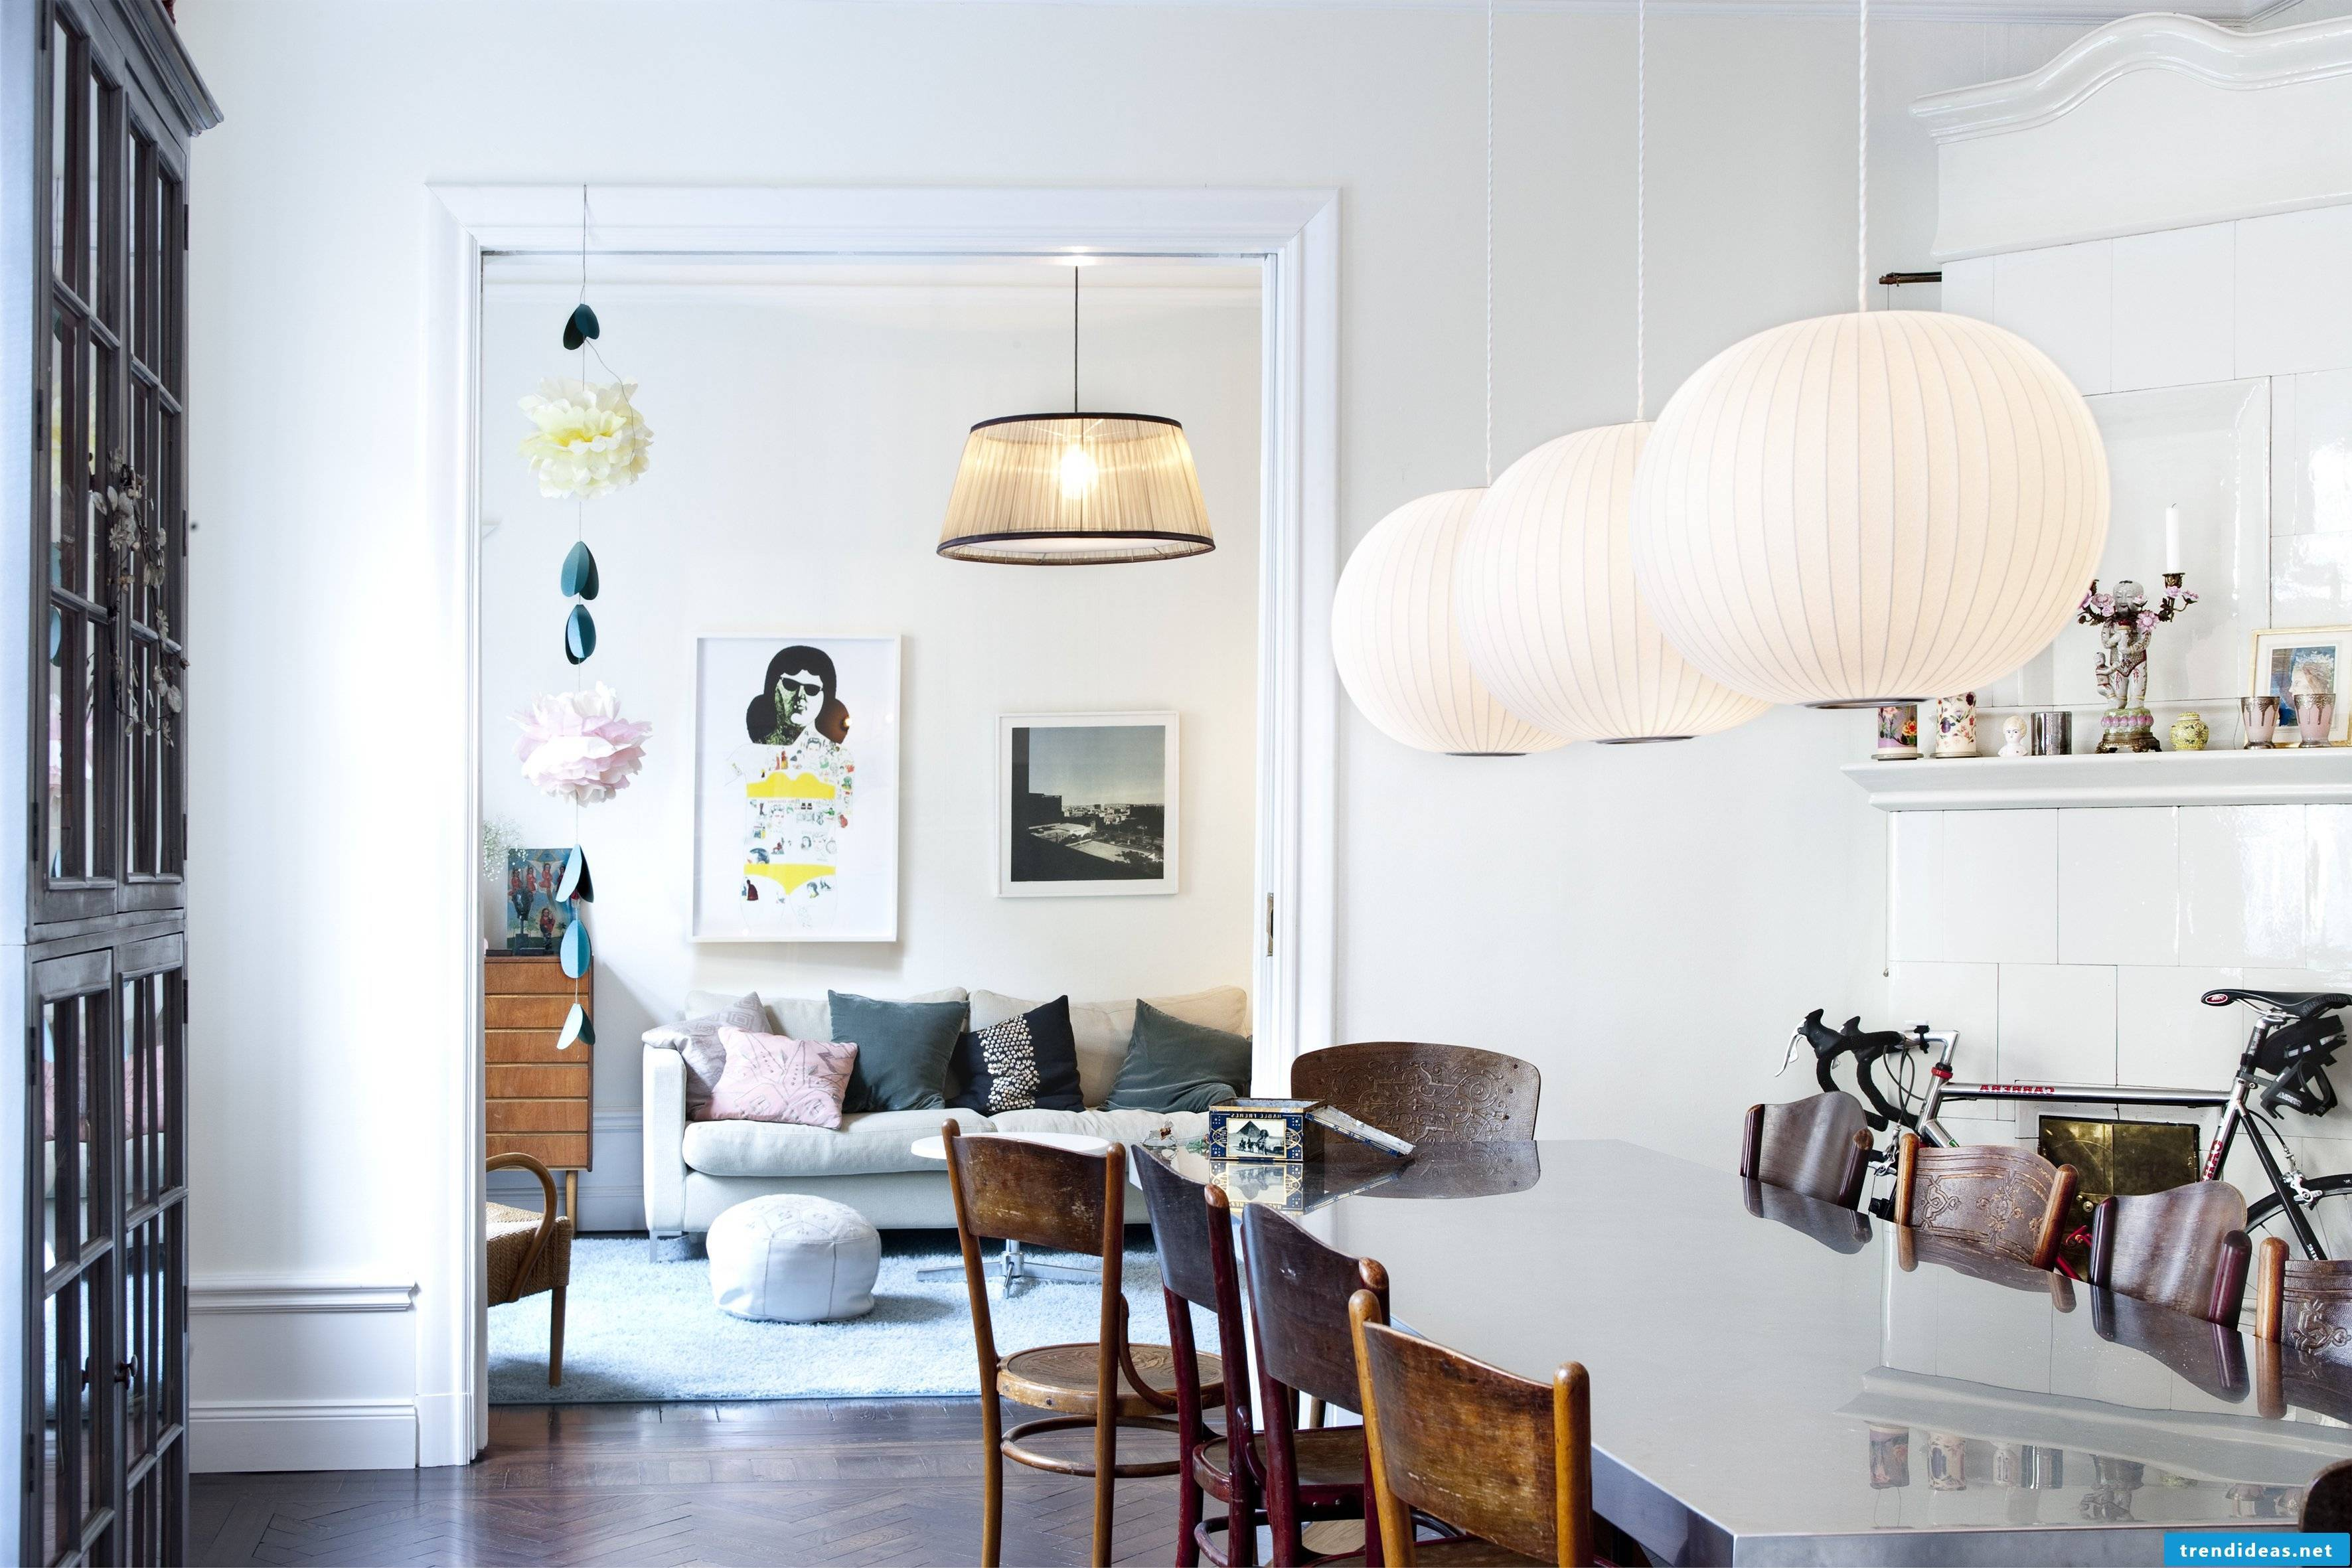 beautiful accents create dynamics in the room